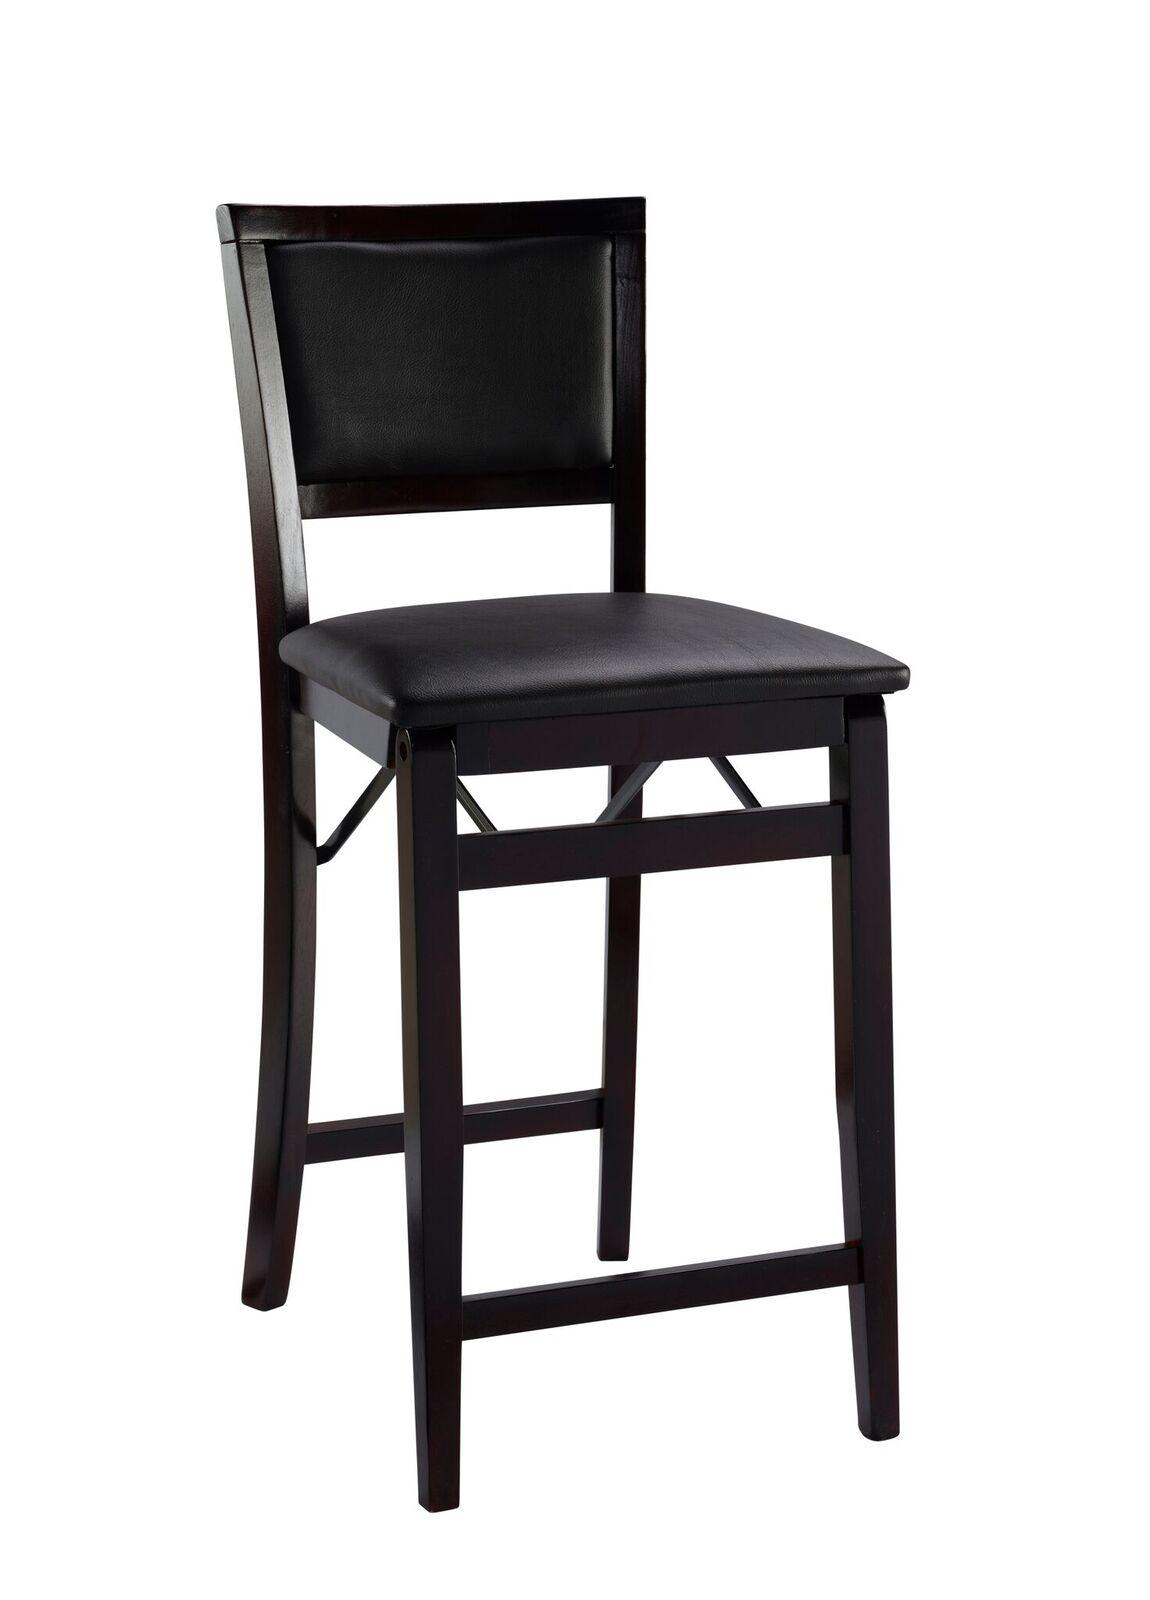 Snack Bar Stools Simple Furniture Of America Fendeson